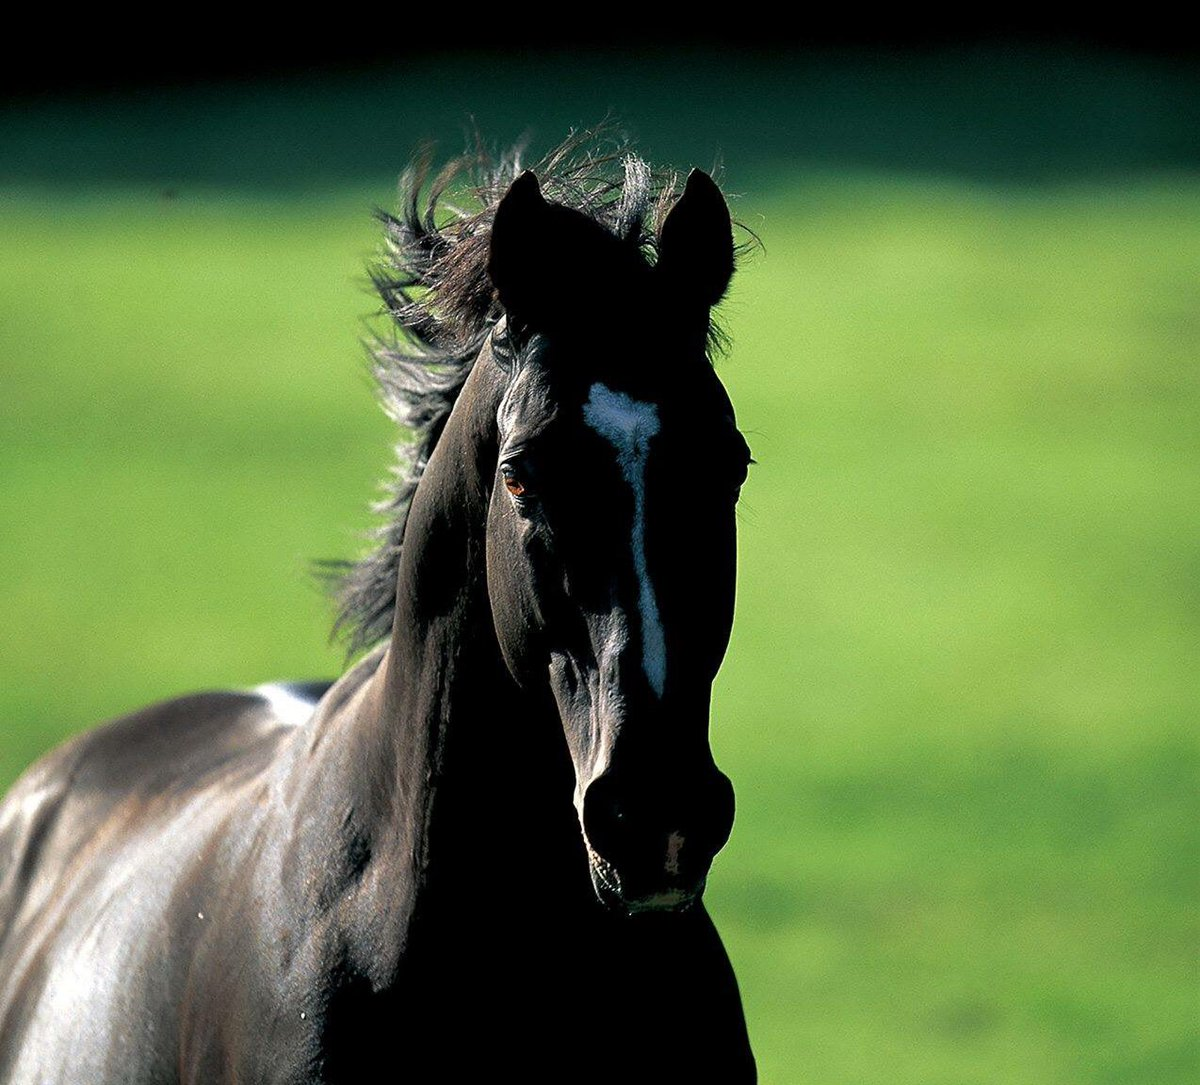 Remembering the #KentuckyDerby winner and leading sire in Japan #SundaySilence #champion #legend #sire #Thoroughbred #racehorse<br>http://pic.twitter.com/3apWHrBpJr